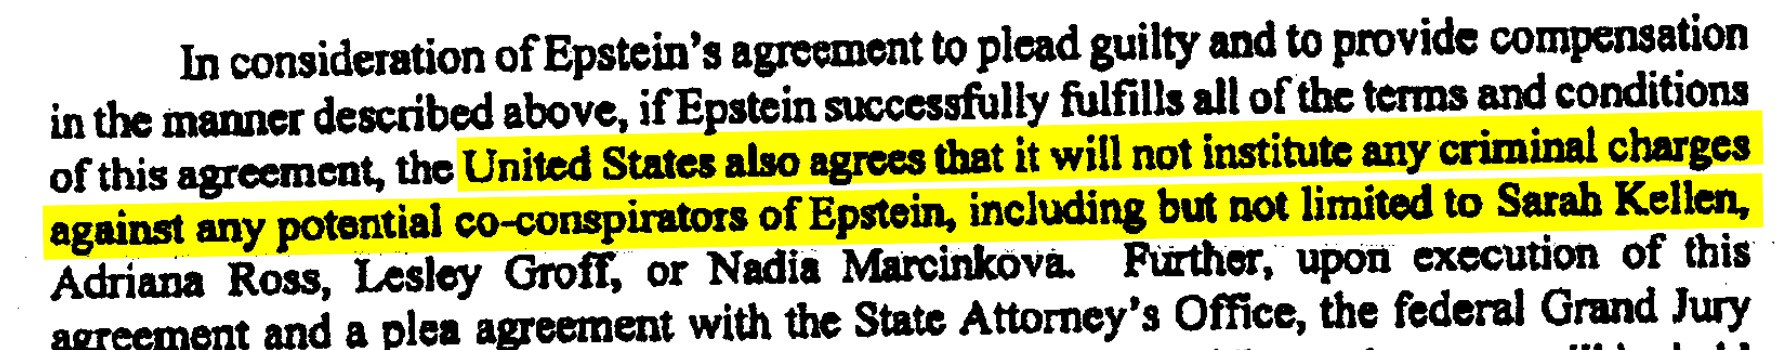 Portion of Non-Prosecution of Co-Conspirators Clause